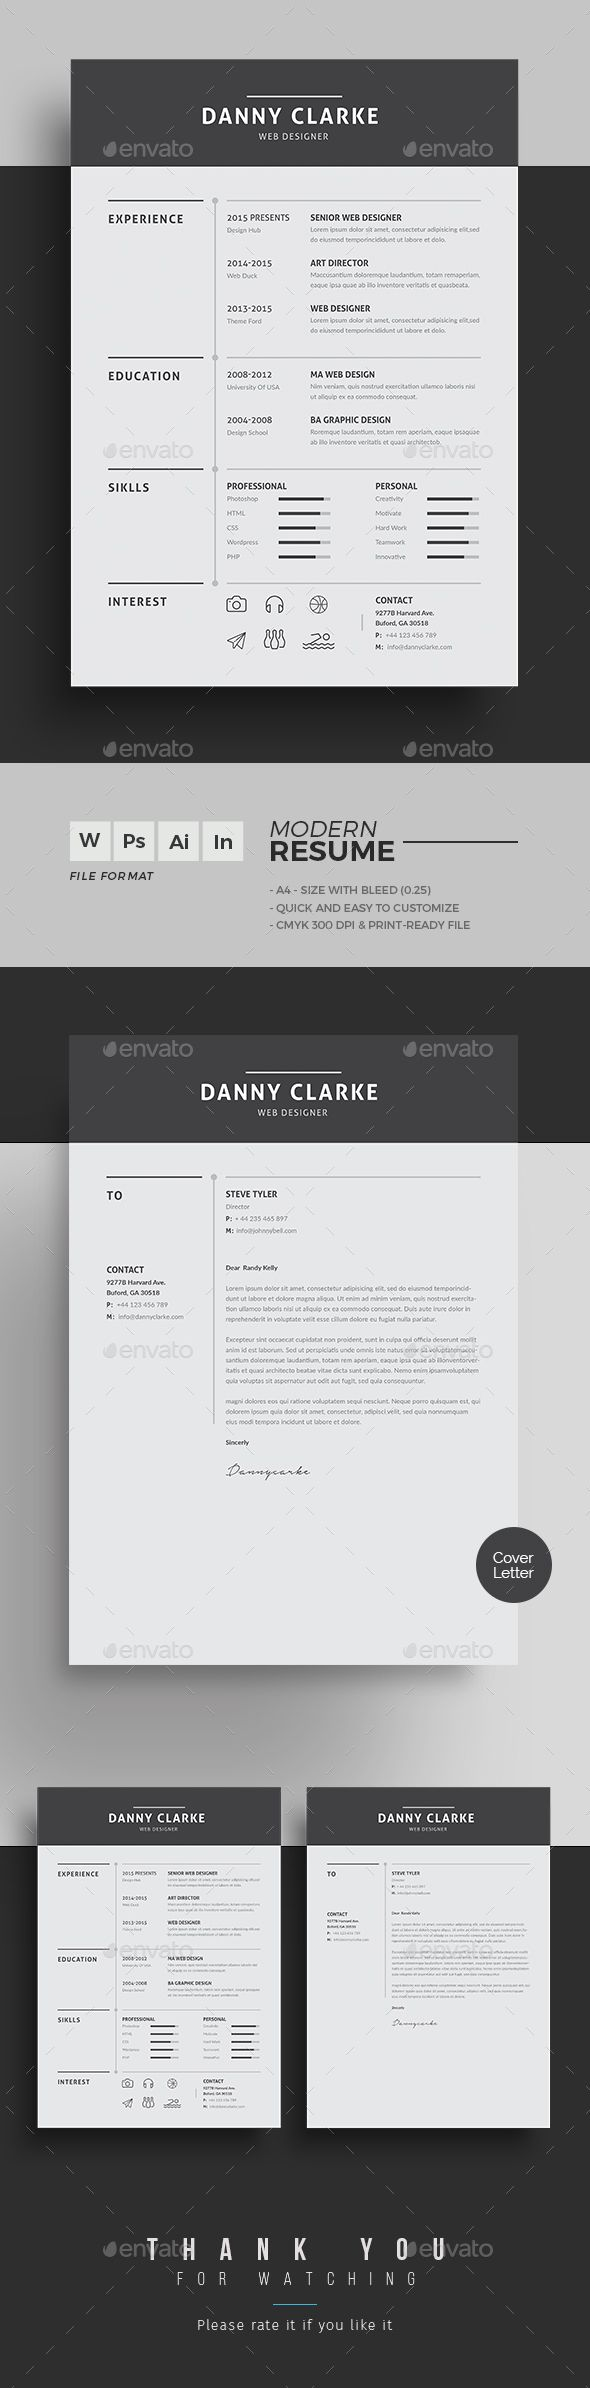 Chronological Resume Samples%0A Best     Resume templates ideas on Pinterest   Resume  Resume design  template and Resume references